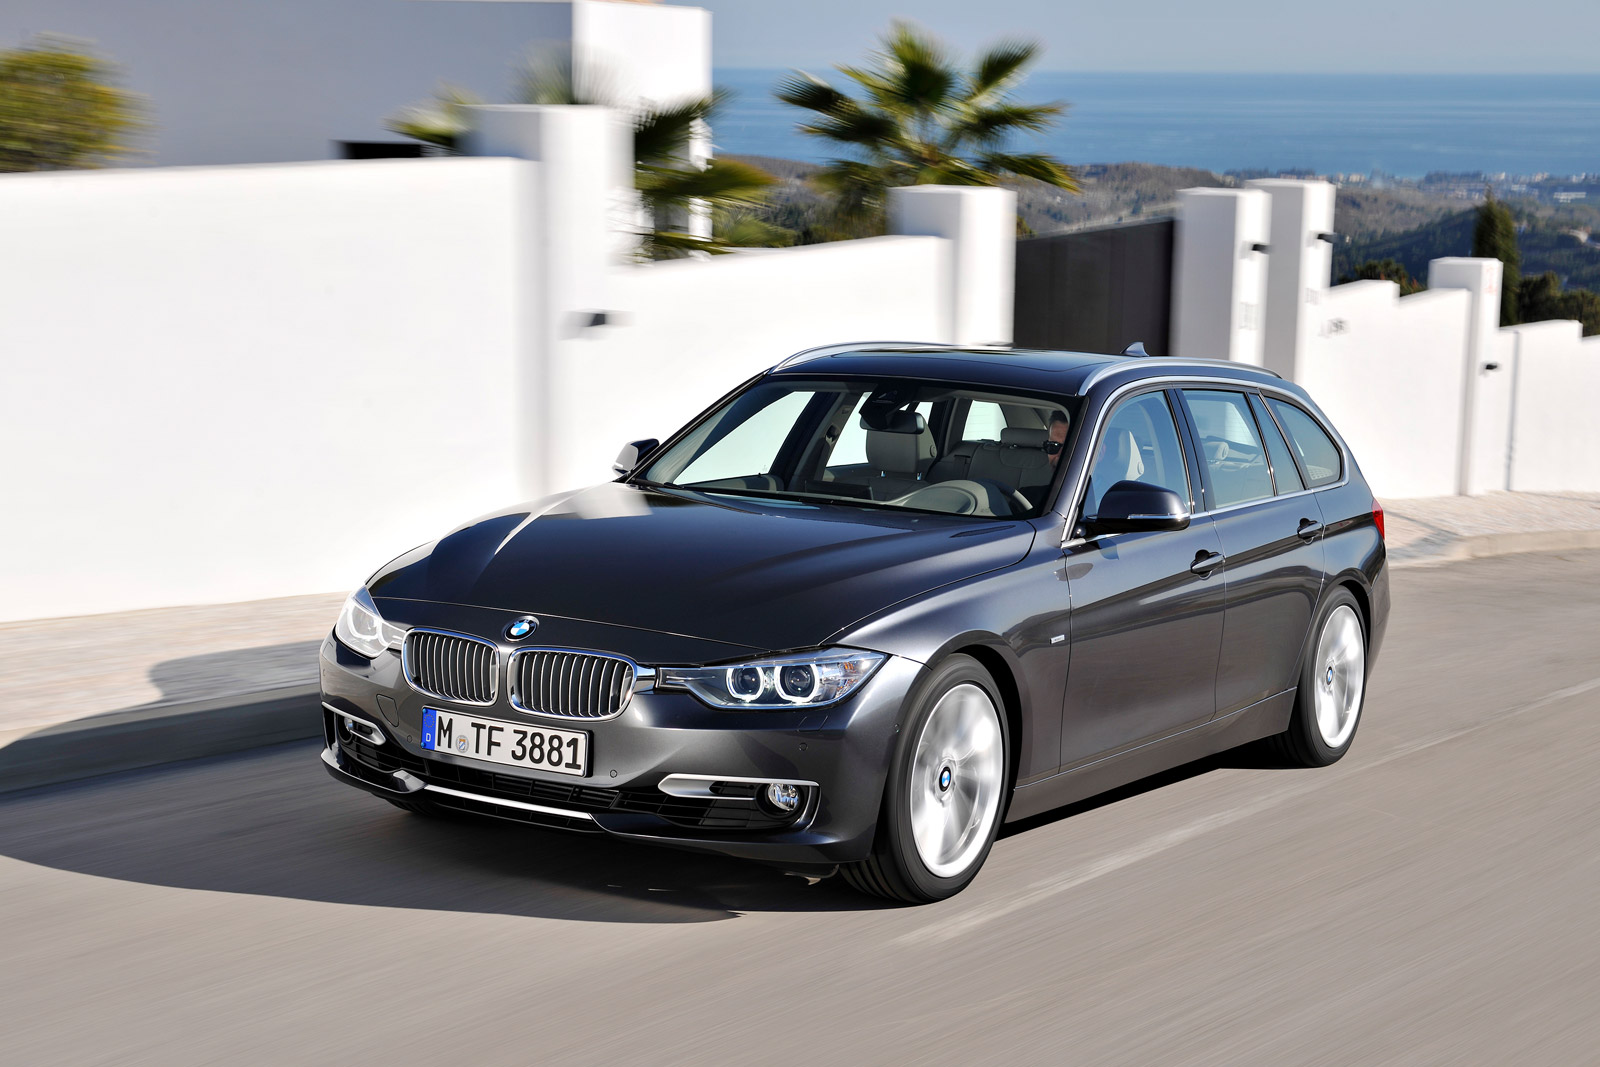 bmw confirms diesel 3 series sports wagon for u s. Black Bedroom Furniture Sets. Home Design Ideas